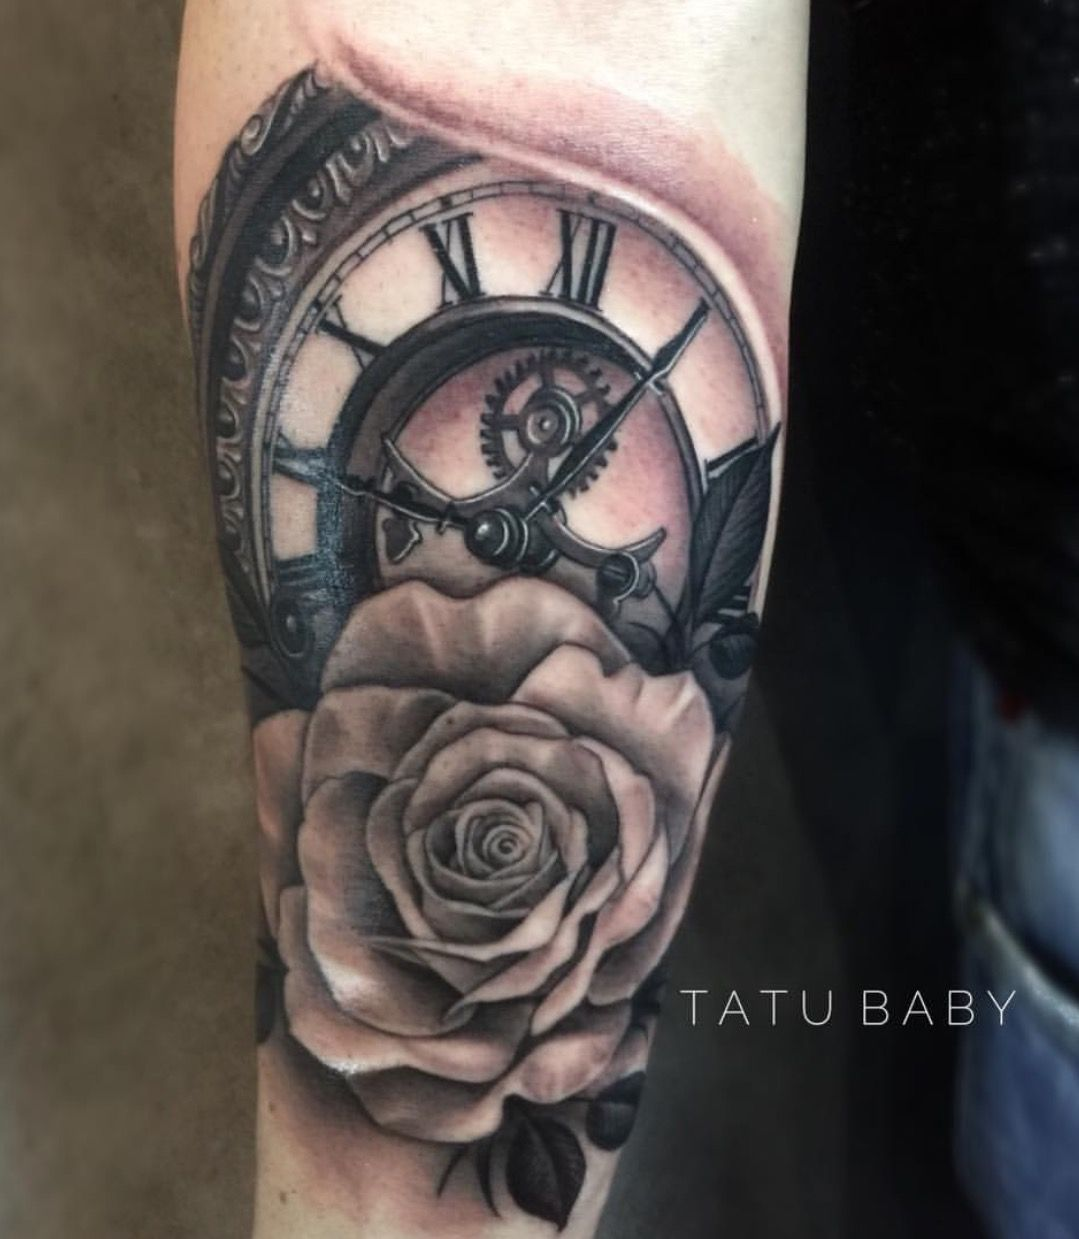 Clock And Roses Tattoo: Clock And Rose Tattoo Email TatuBabyTattoo@gmail.com For